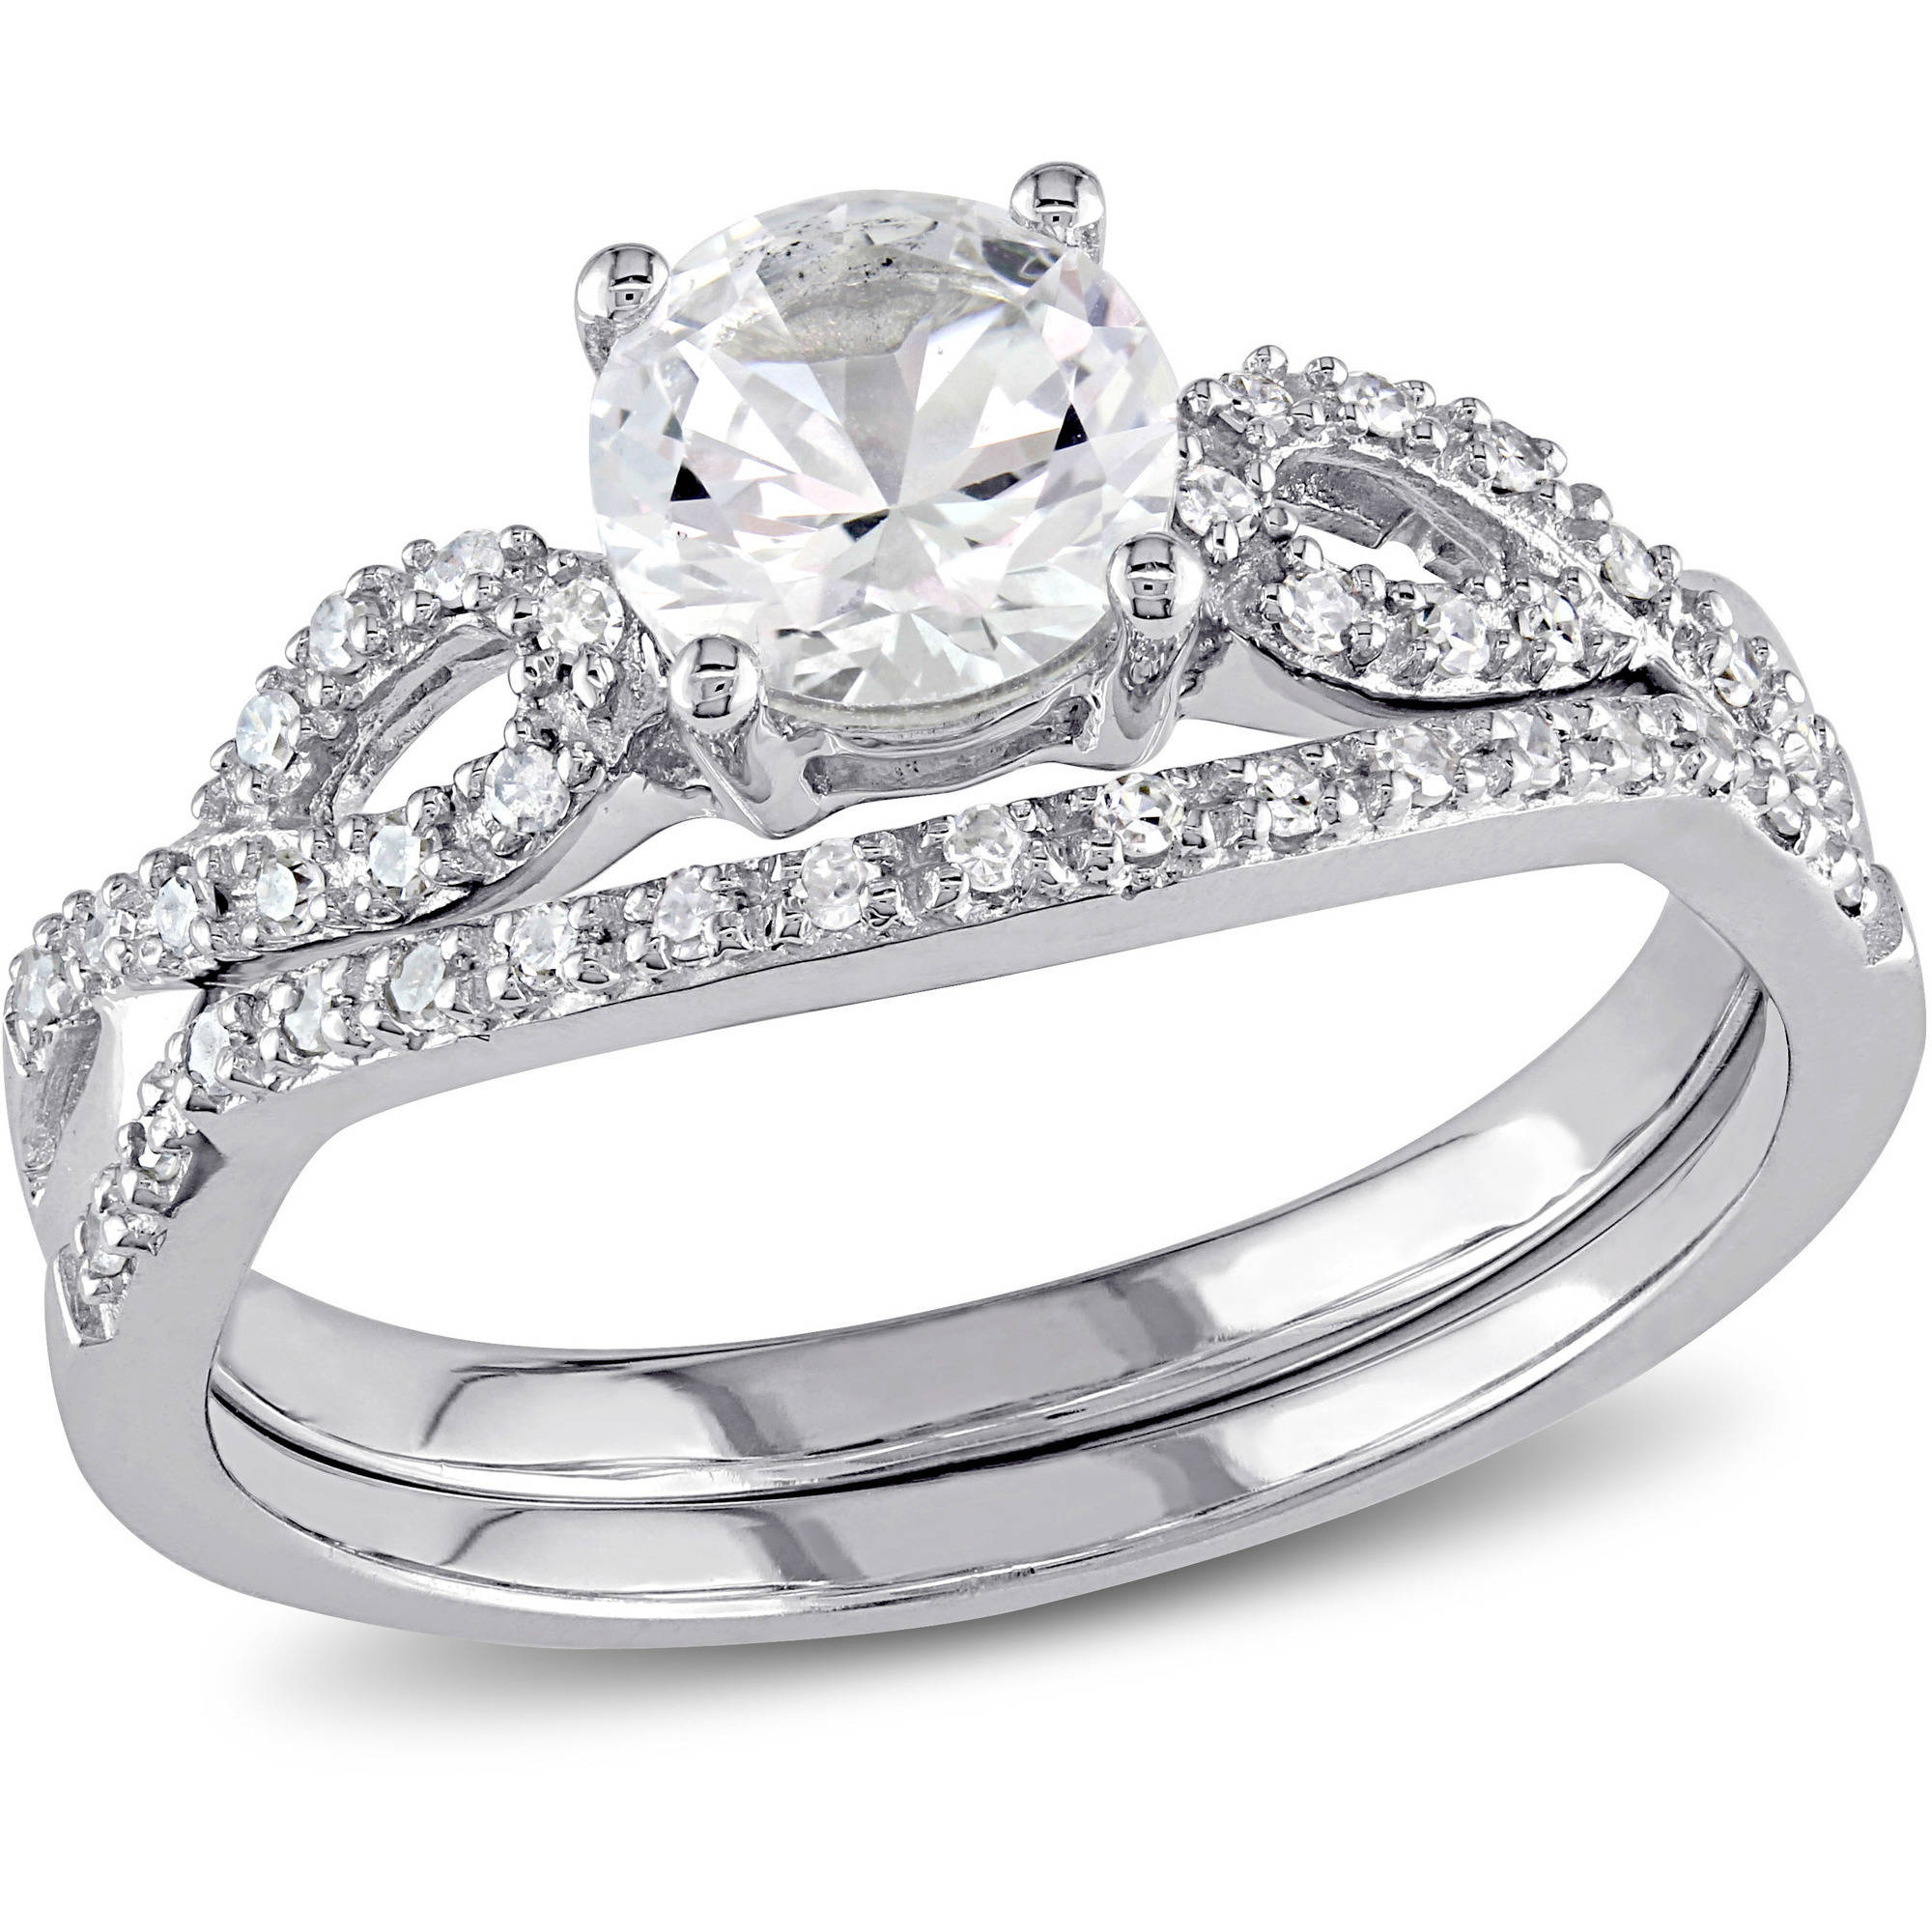 wedding engagement rings walmartcom - Cheap Wedding Rings For Women